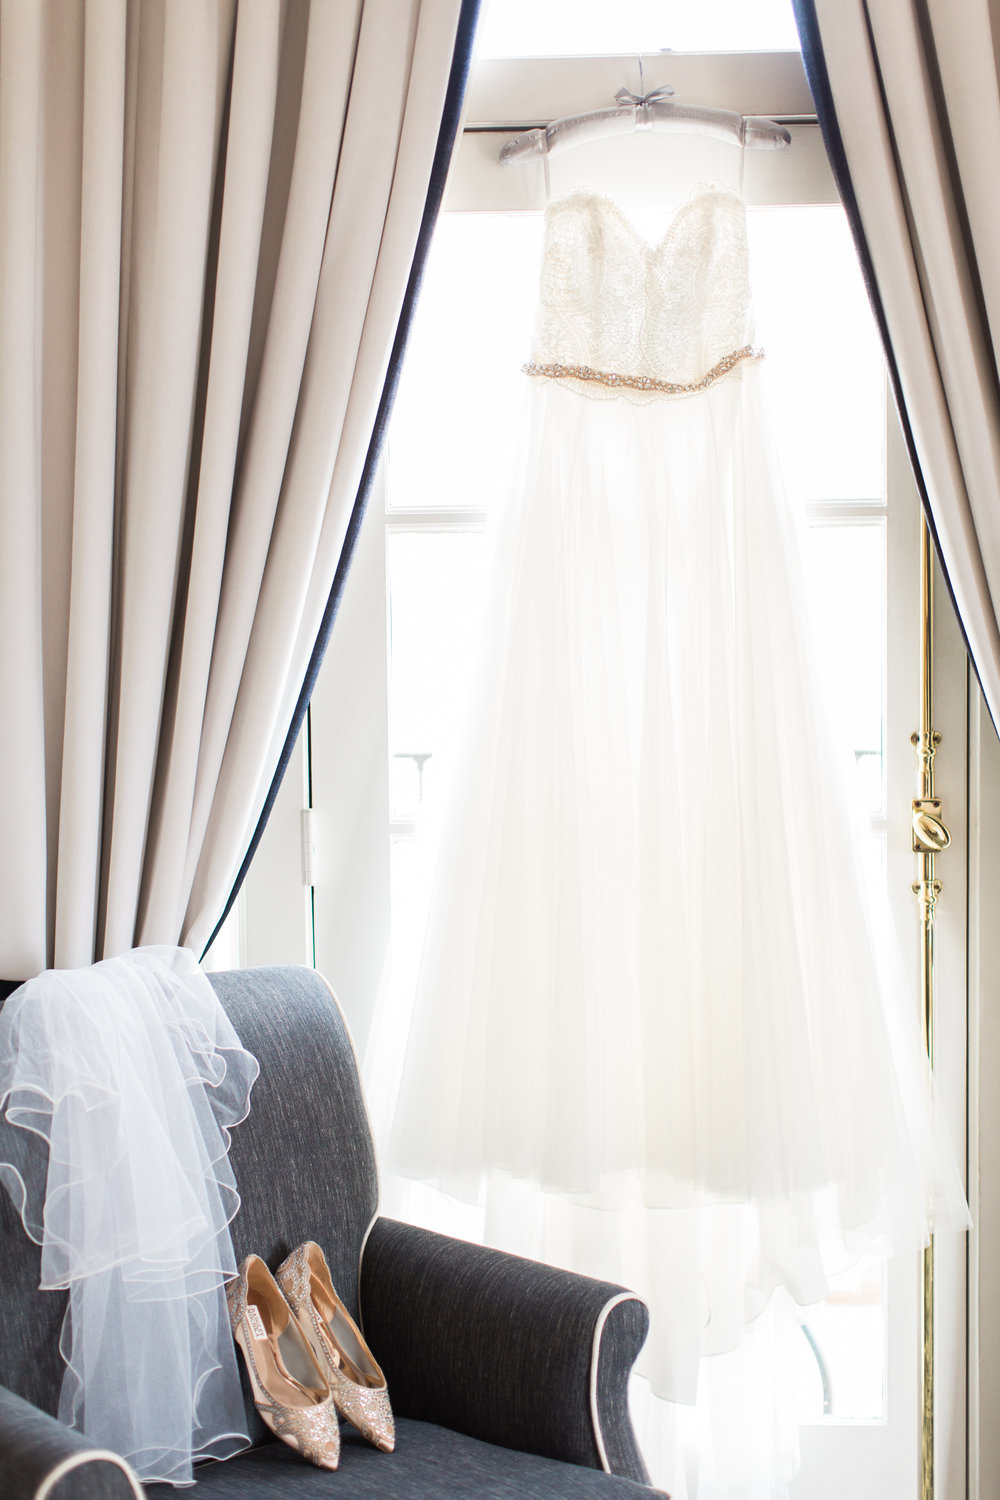 trynhphoto_wedding_photography_Standford_PaloAlto_SF_BayArea_Destination_OC_HA-15.jpg